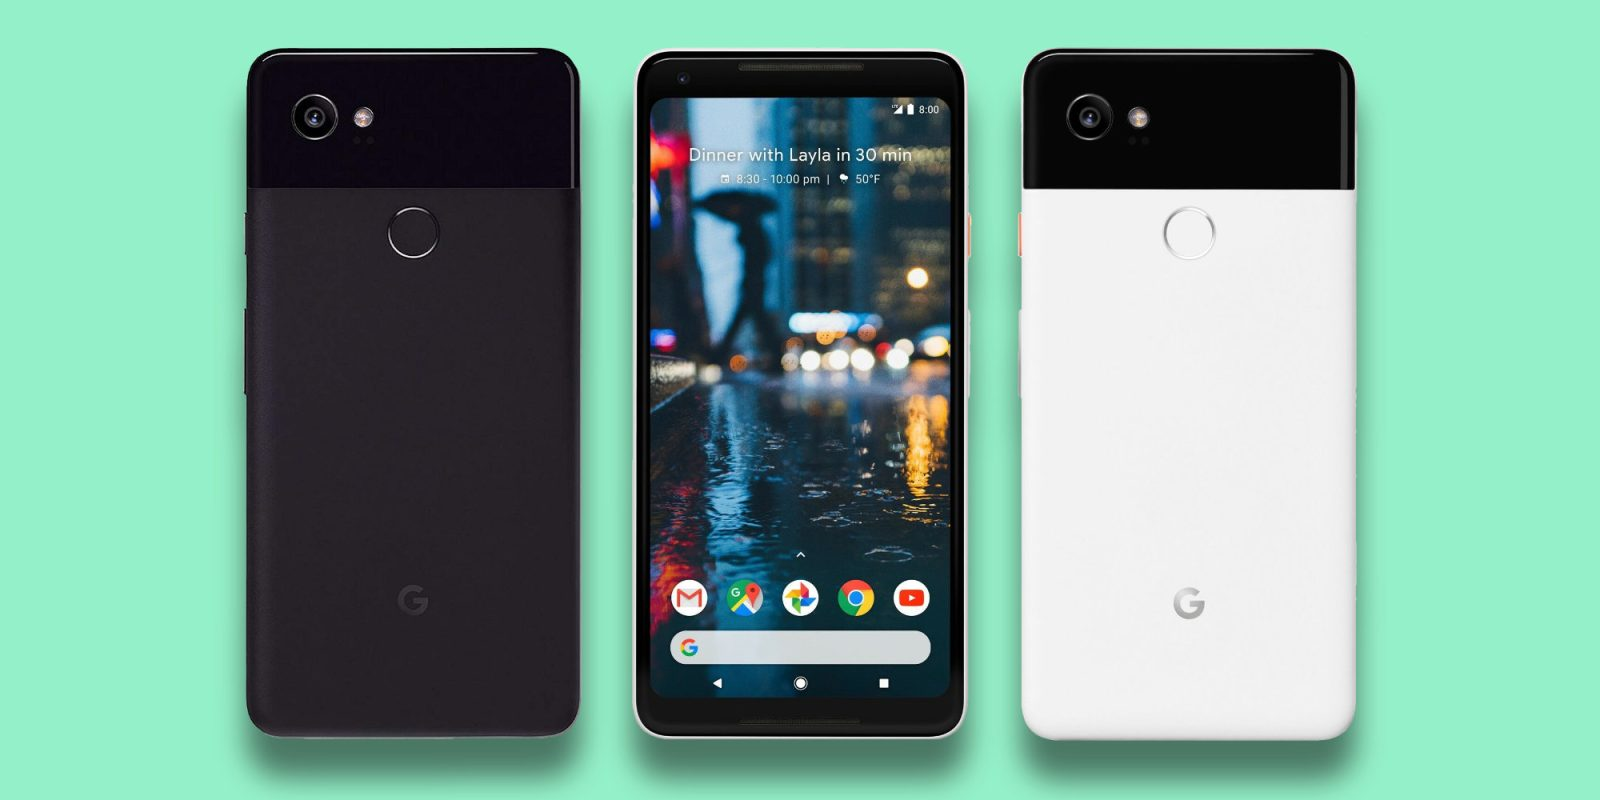 The unlocked Google Pixel 2 XL can be yours for $340 (Reg